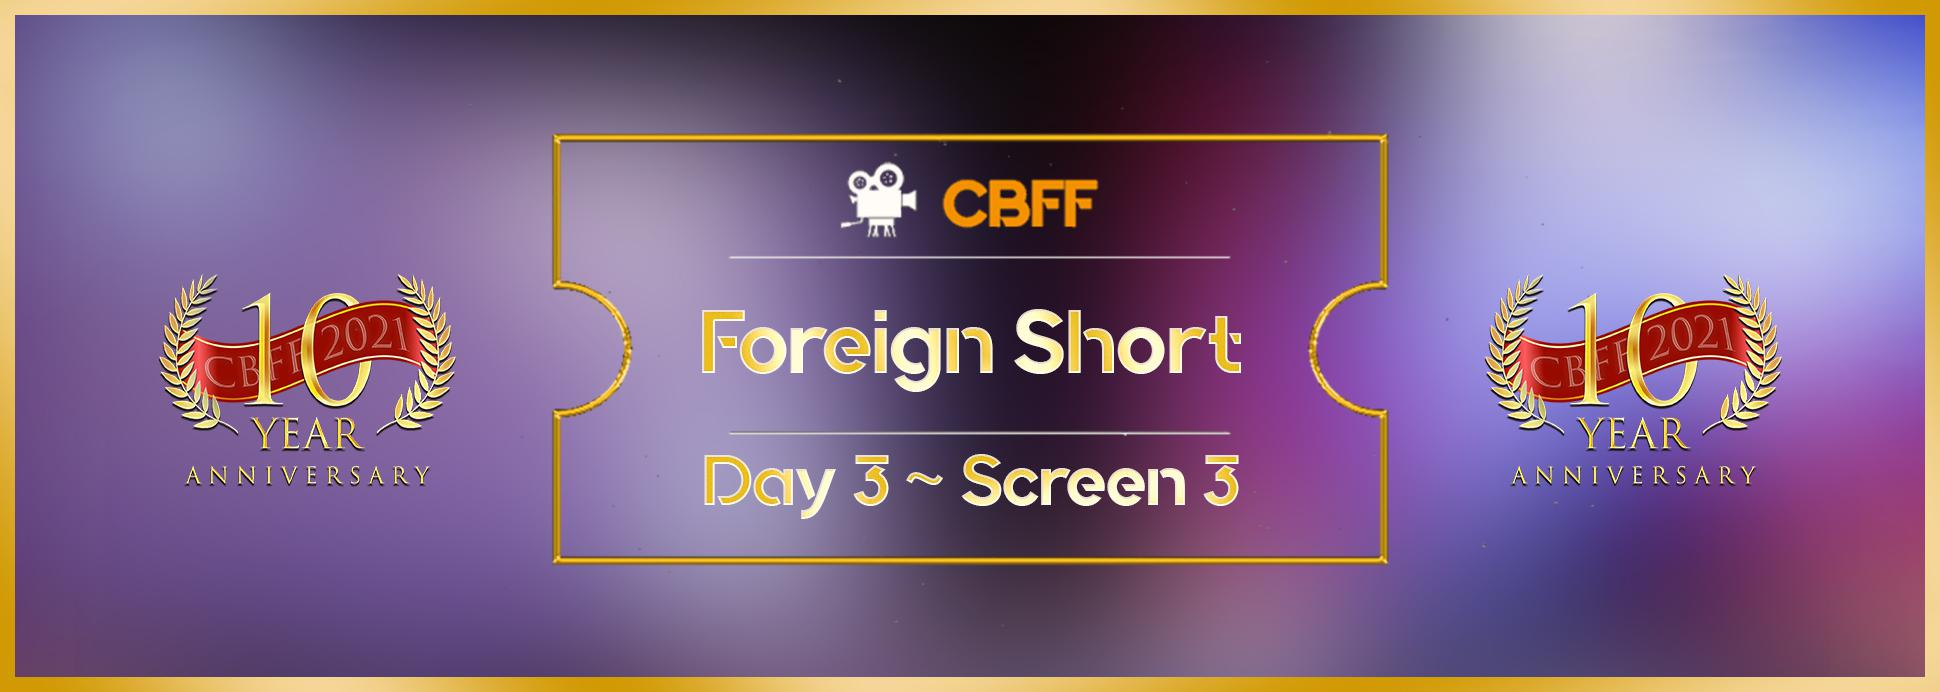 Day 3, Screen 3: Foreign Short Film 2